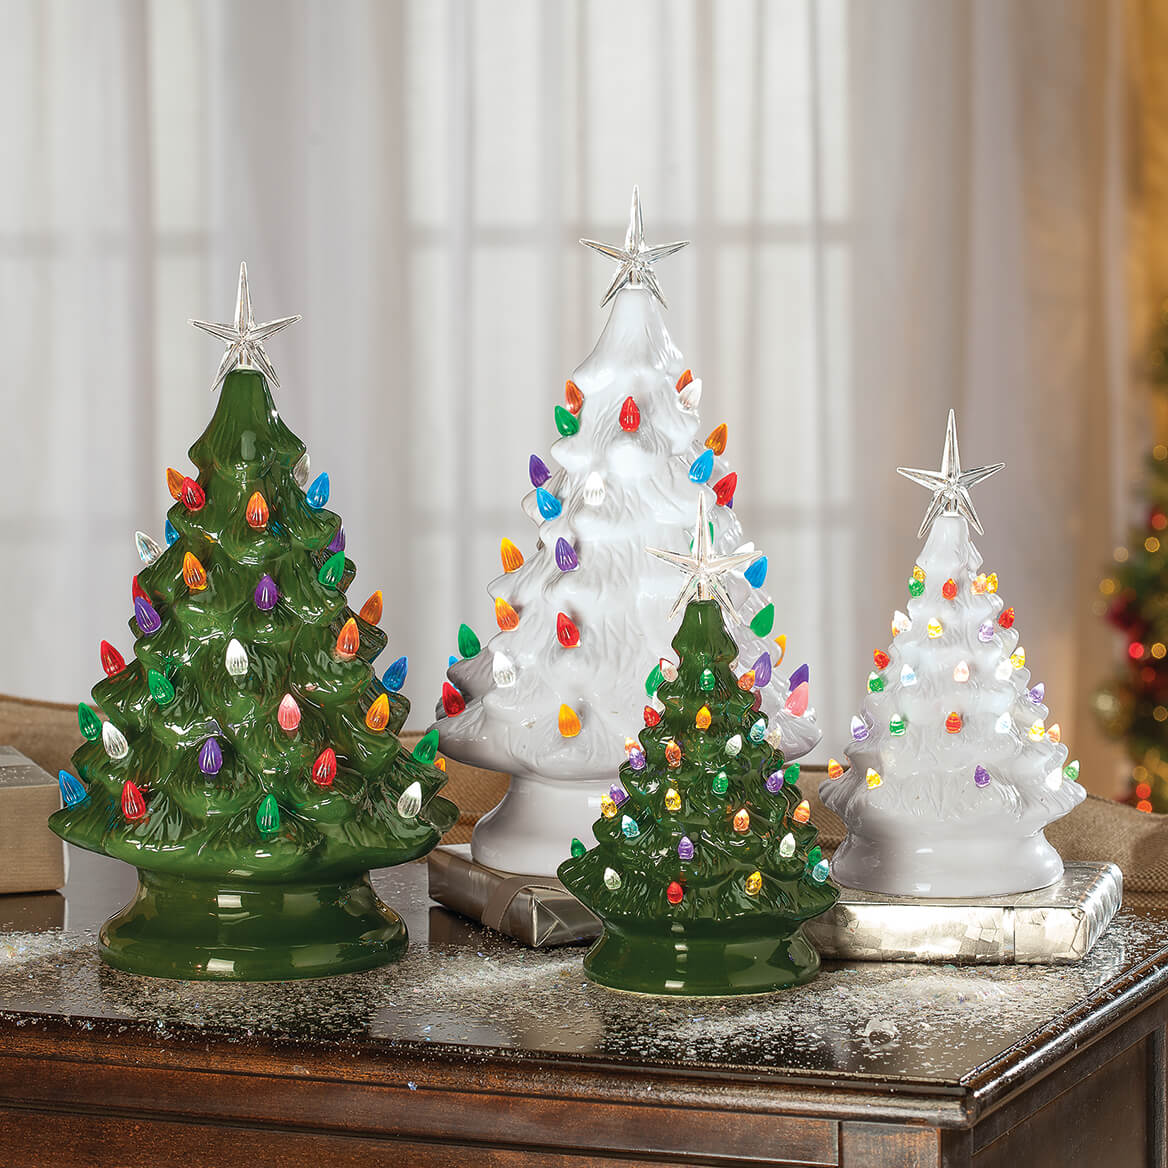 HOLIDAY PEAK Battery-Operated Vintage-Style Ceramic ...